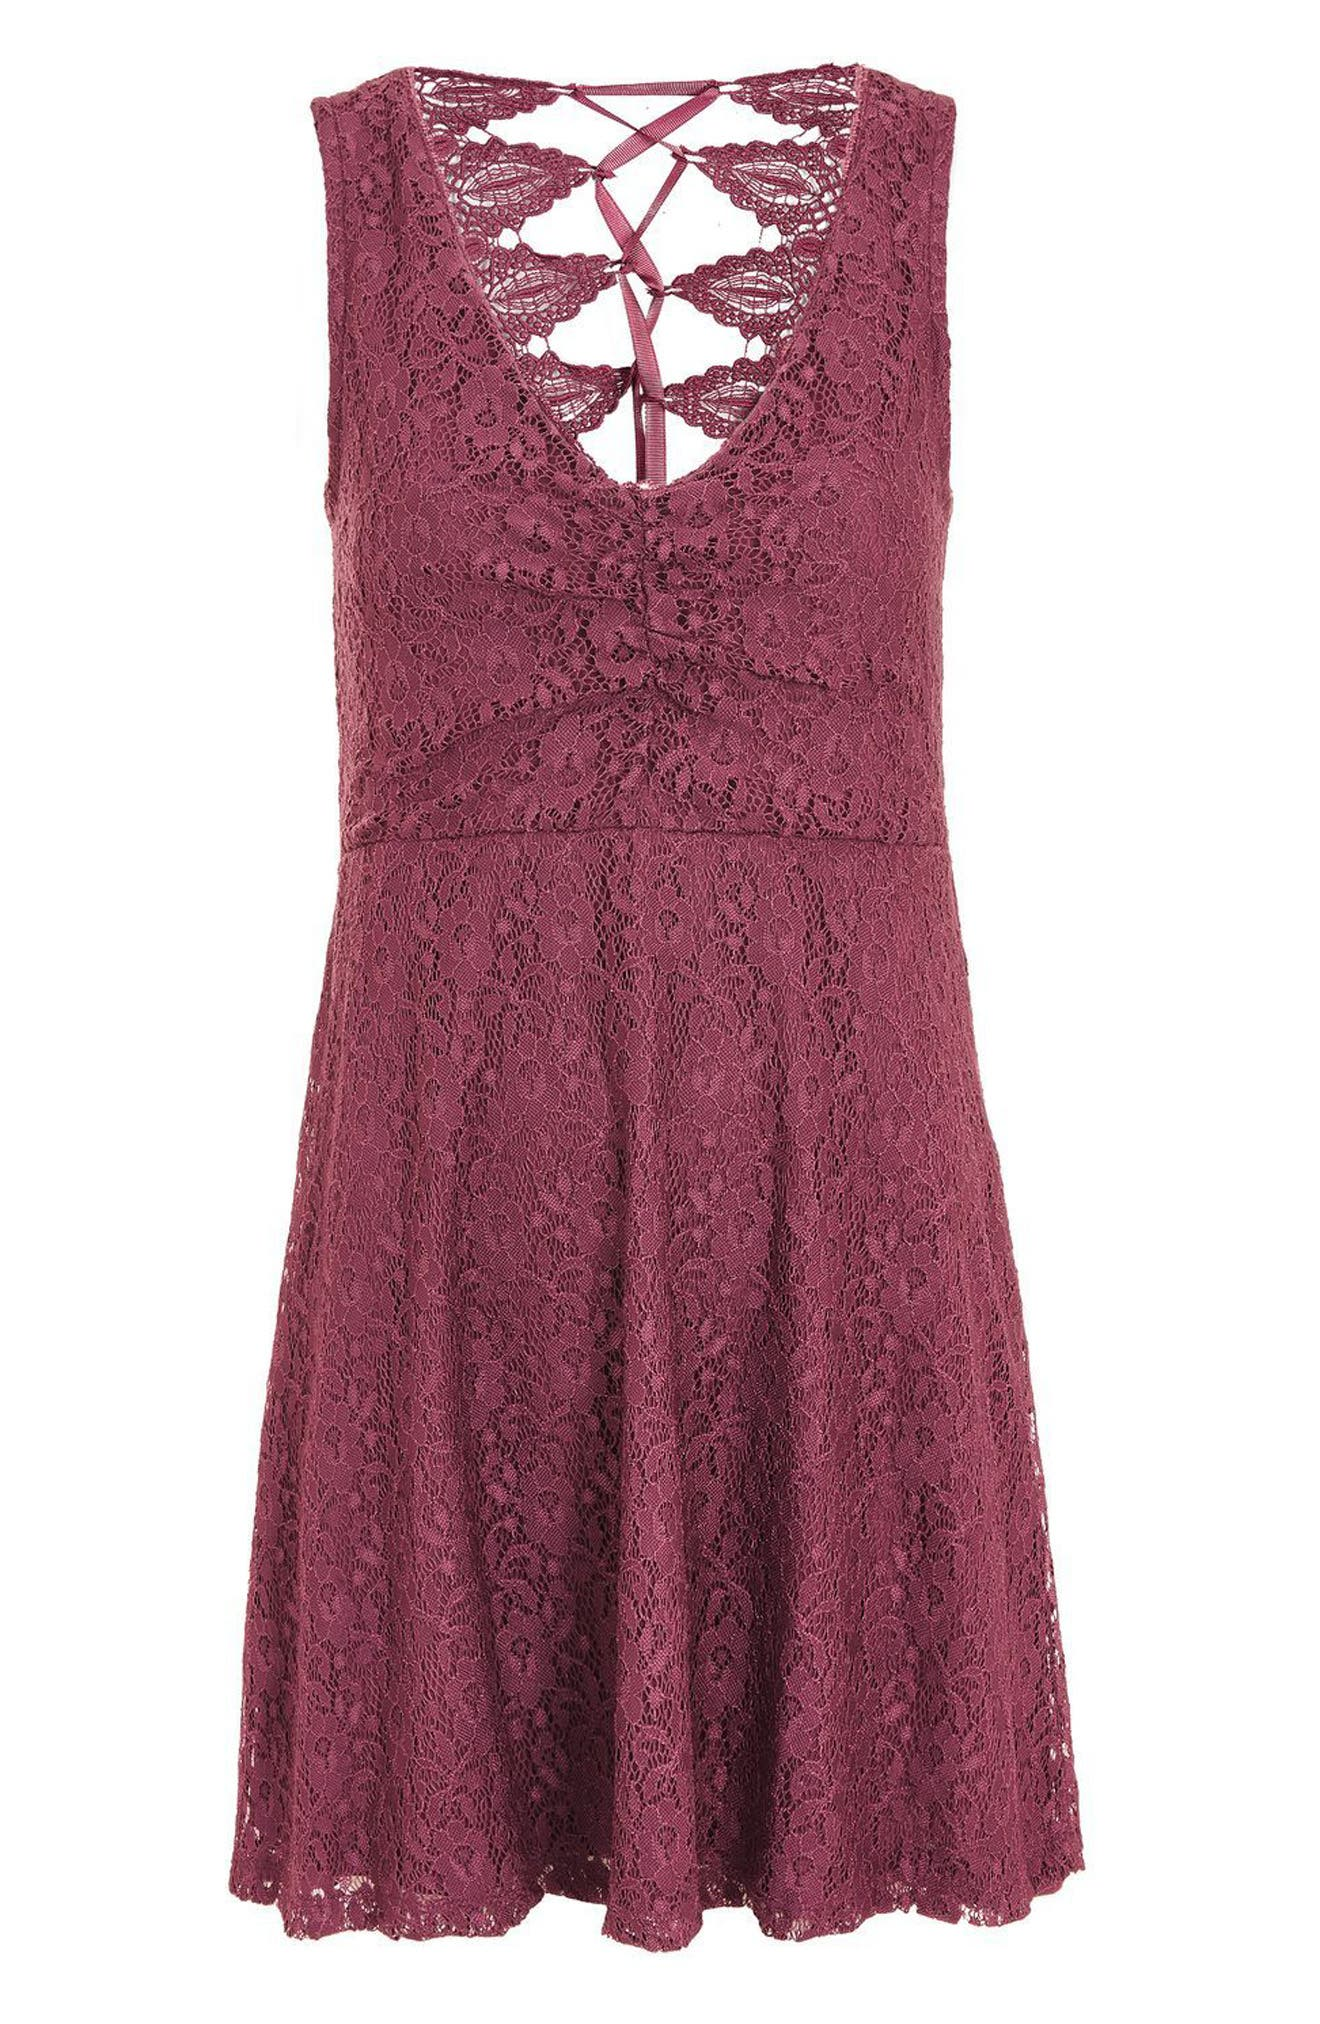 Lace-Up Lace Skater Dress,                             Alternate thumbnail 5, color,                             Purple